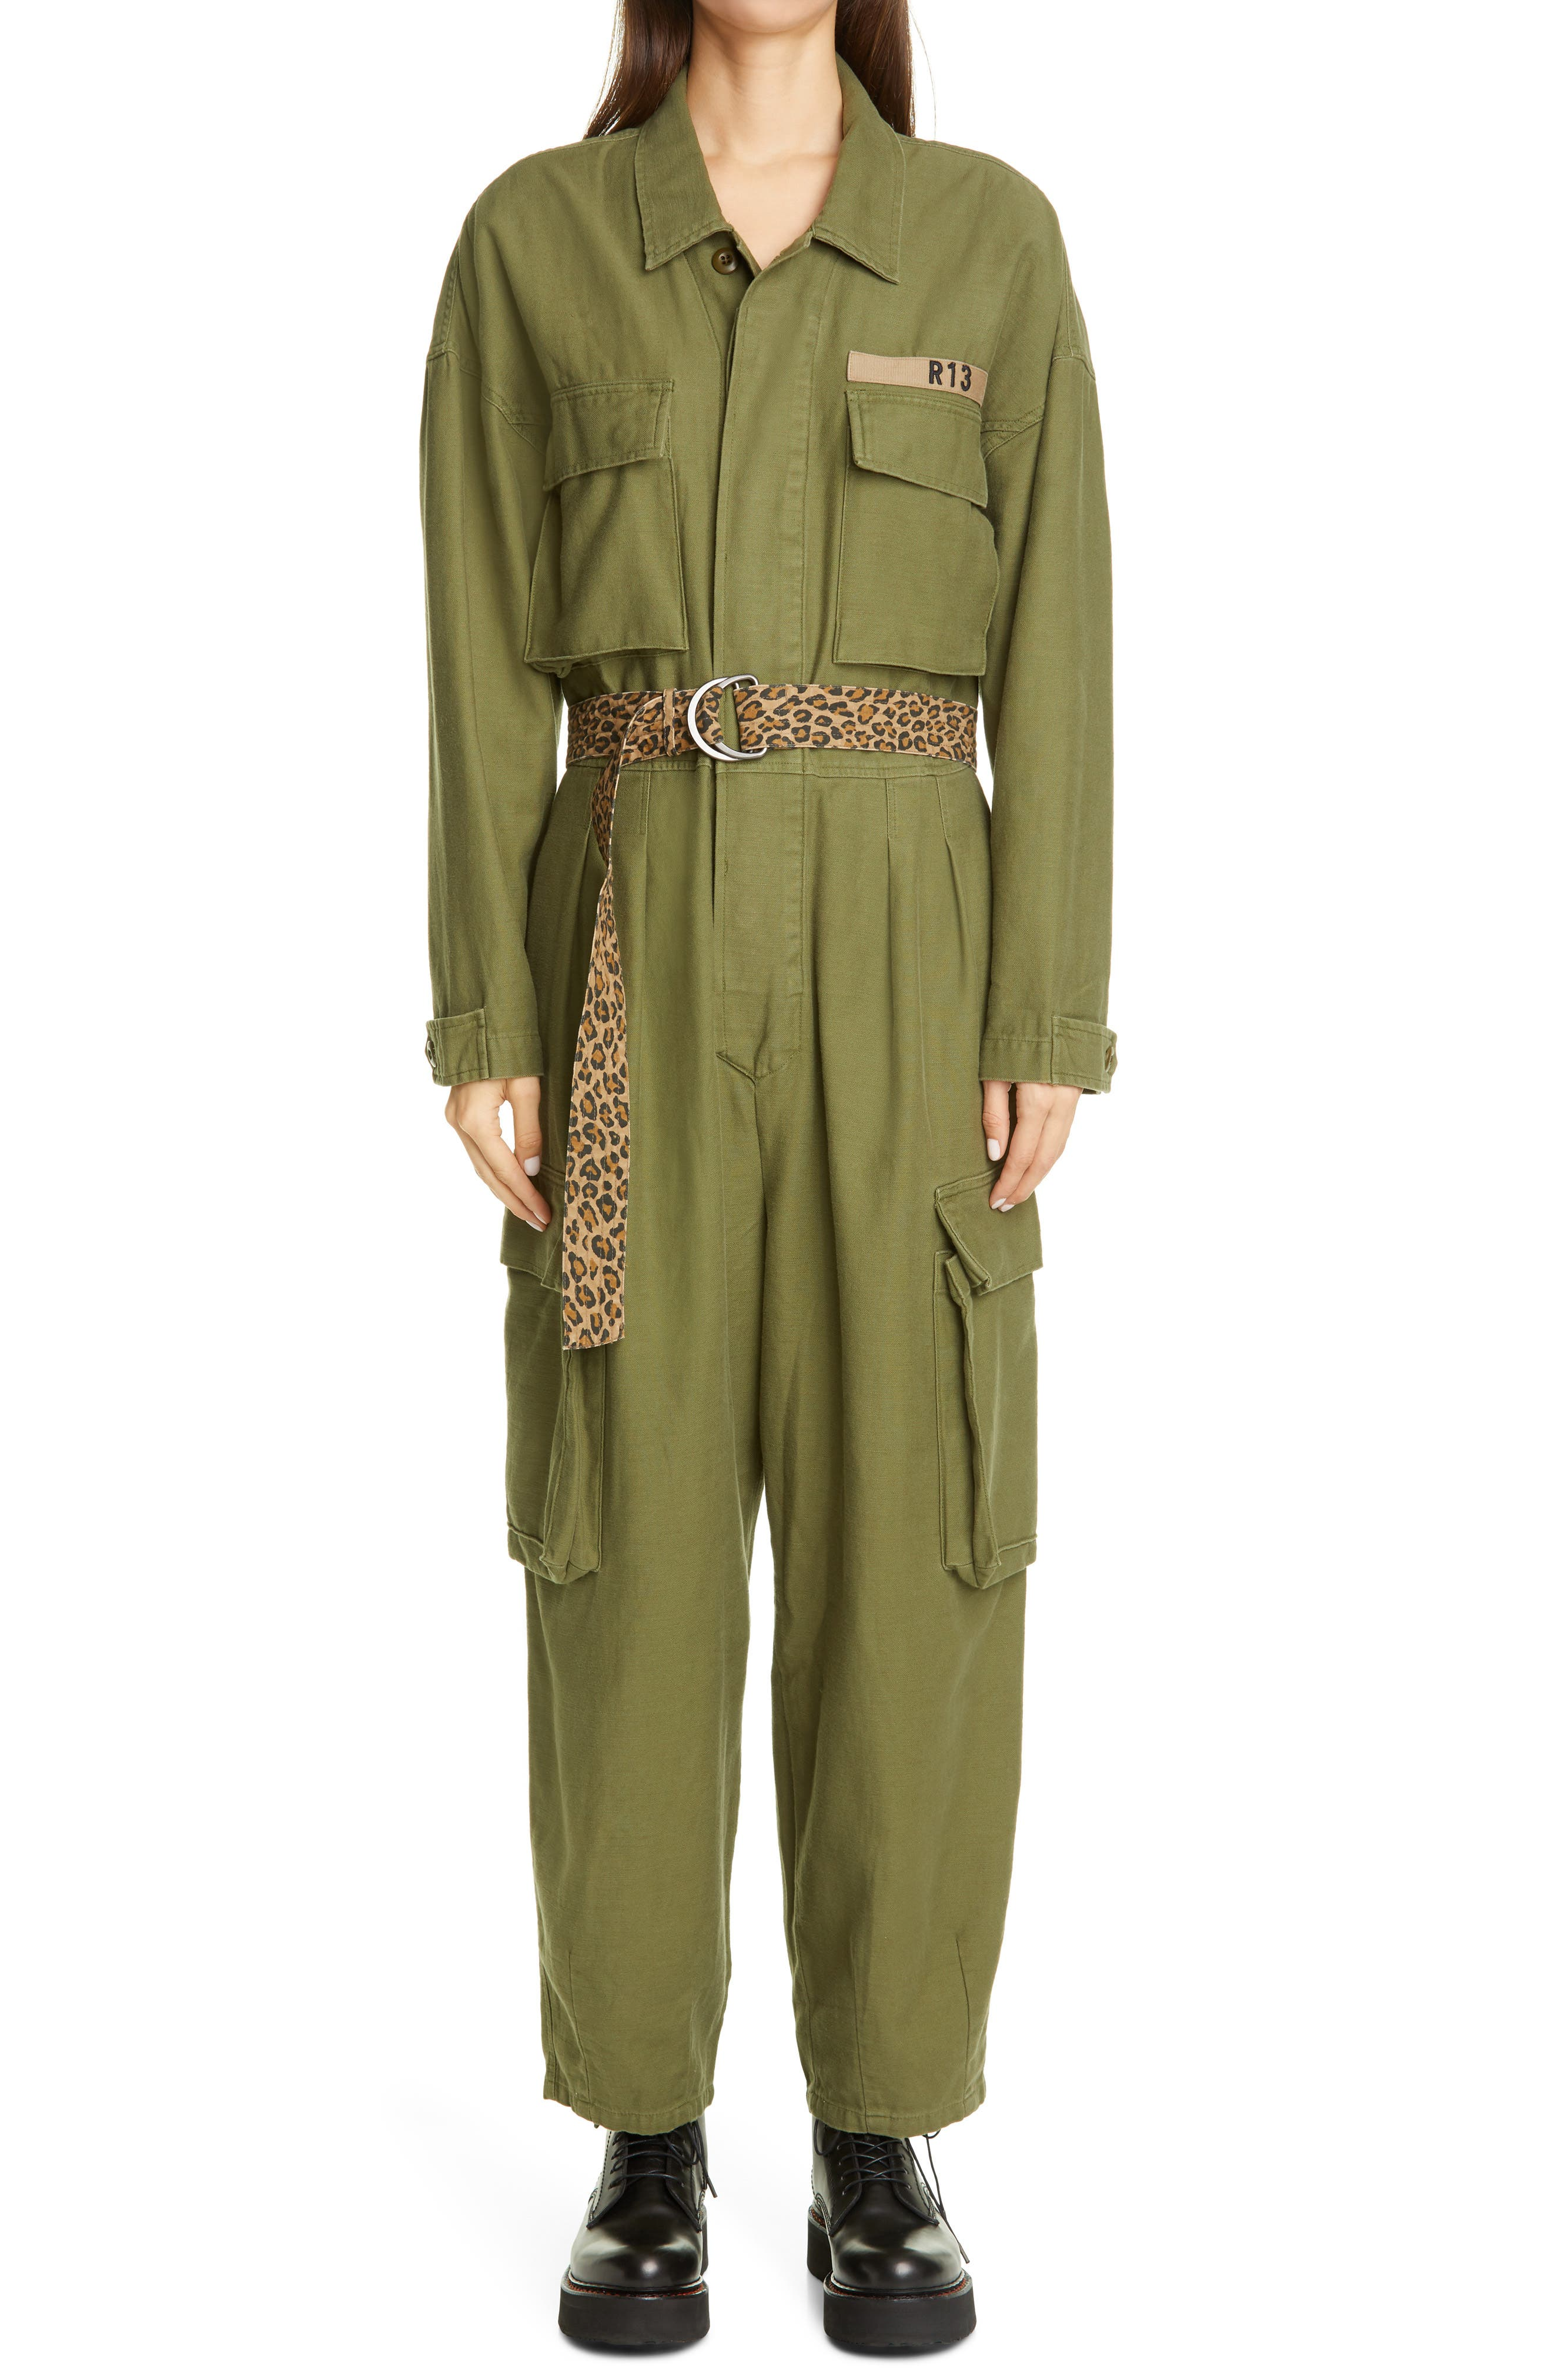 ex-chain store crepe snake print 2 pocket belted jumpsuit size 6